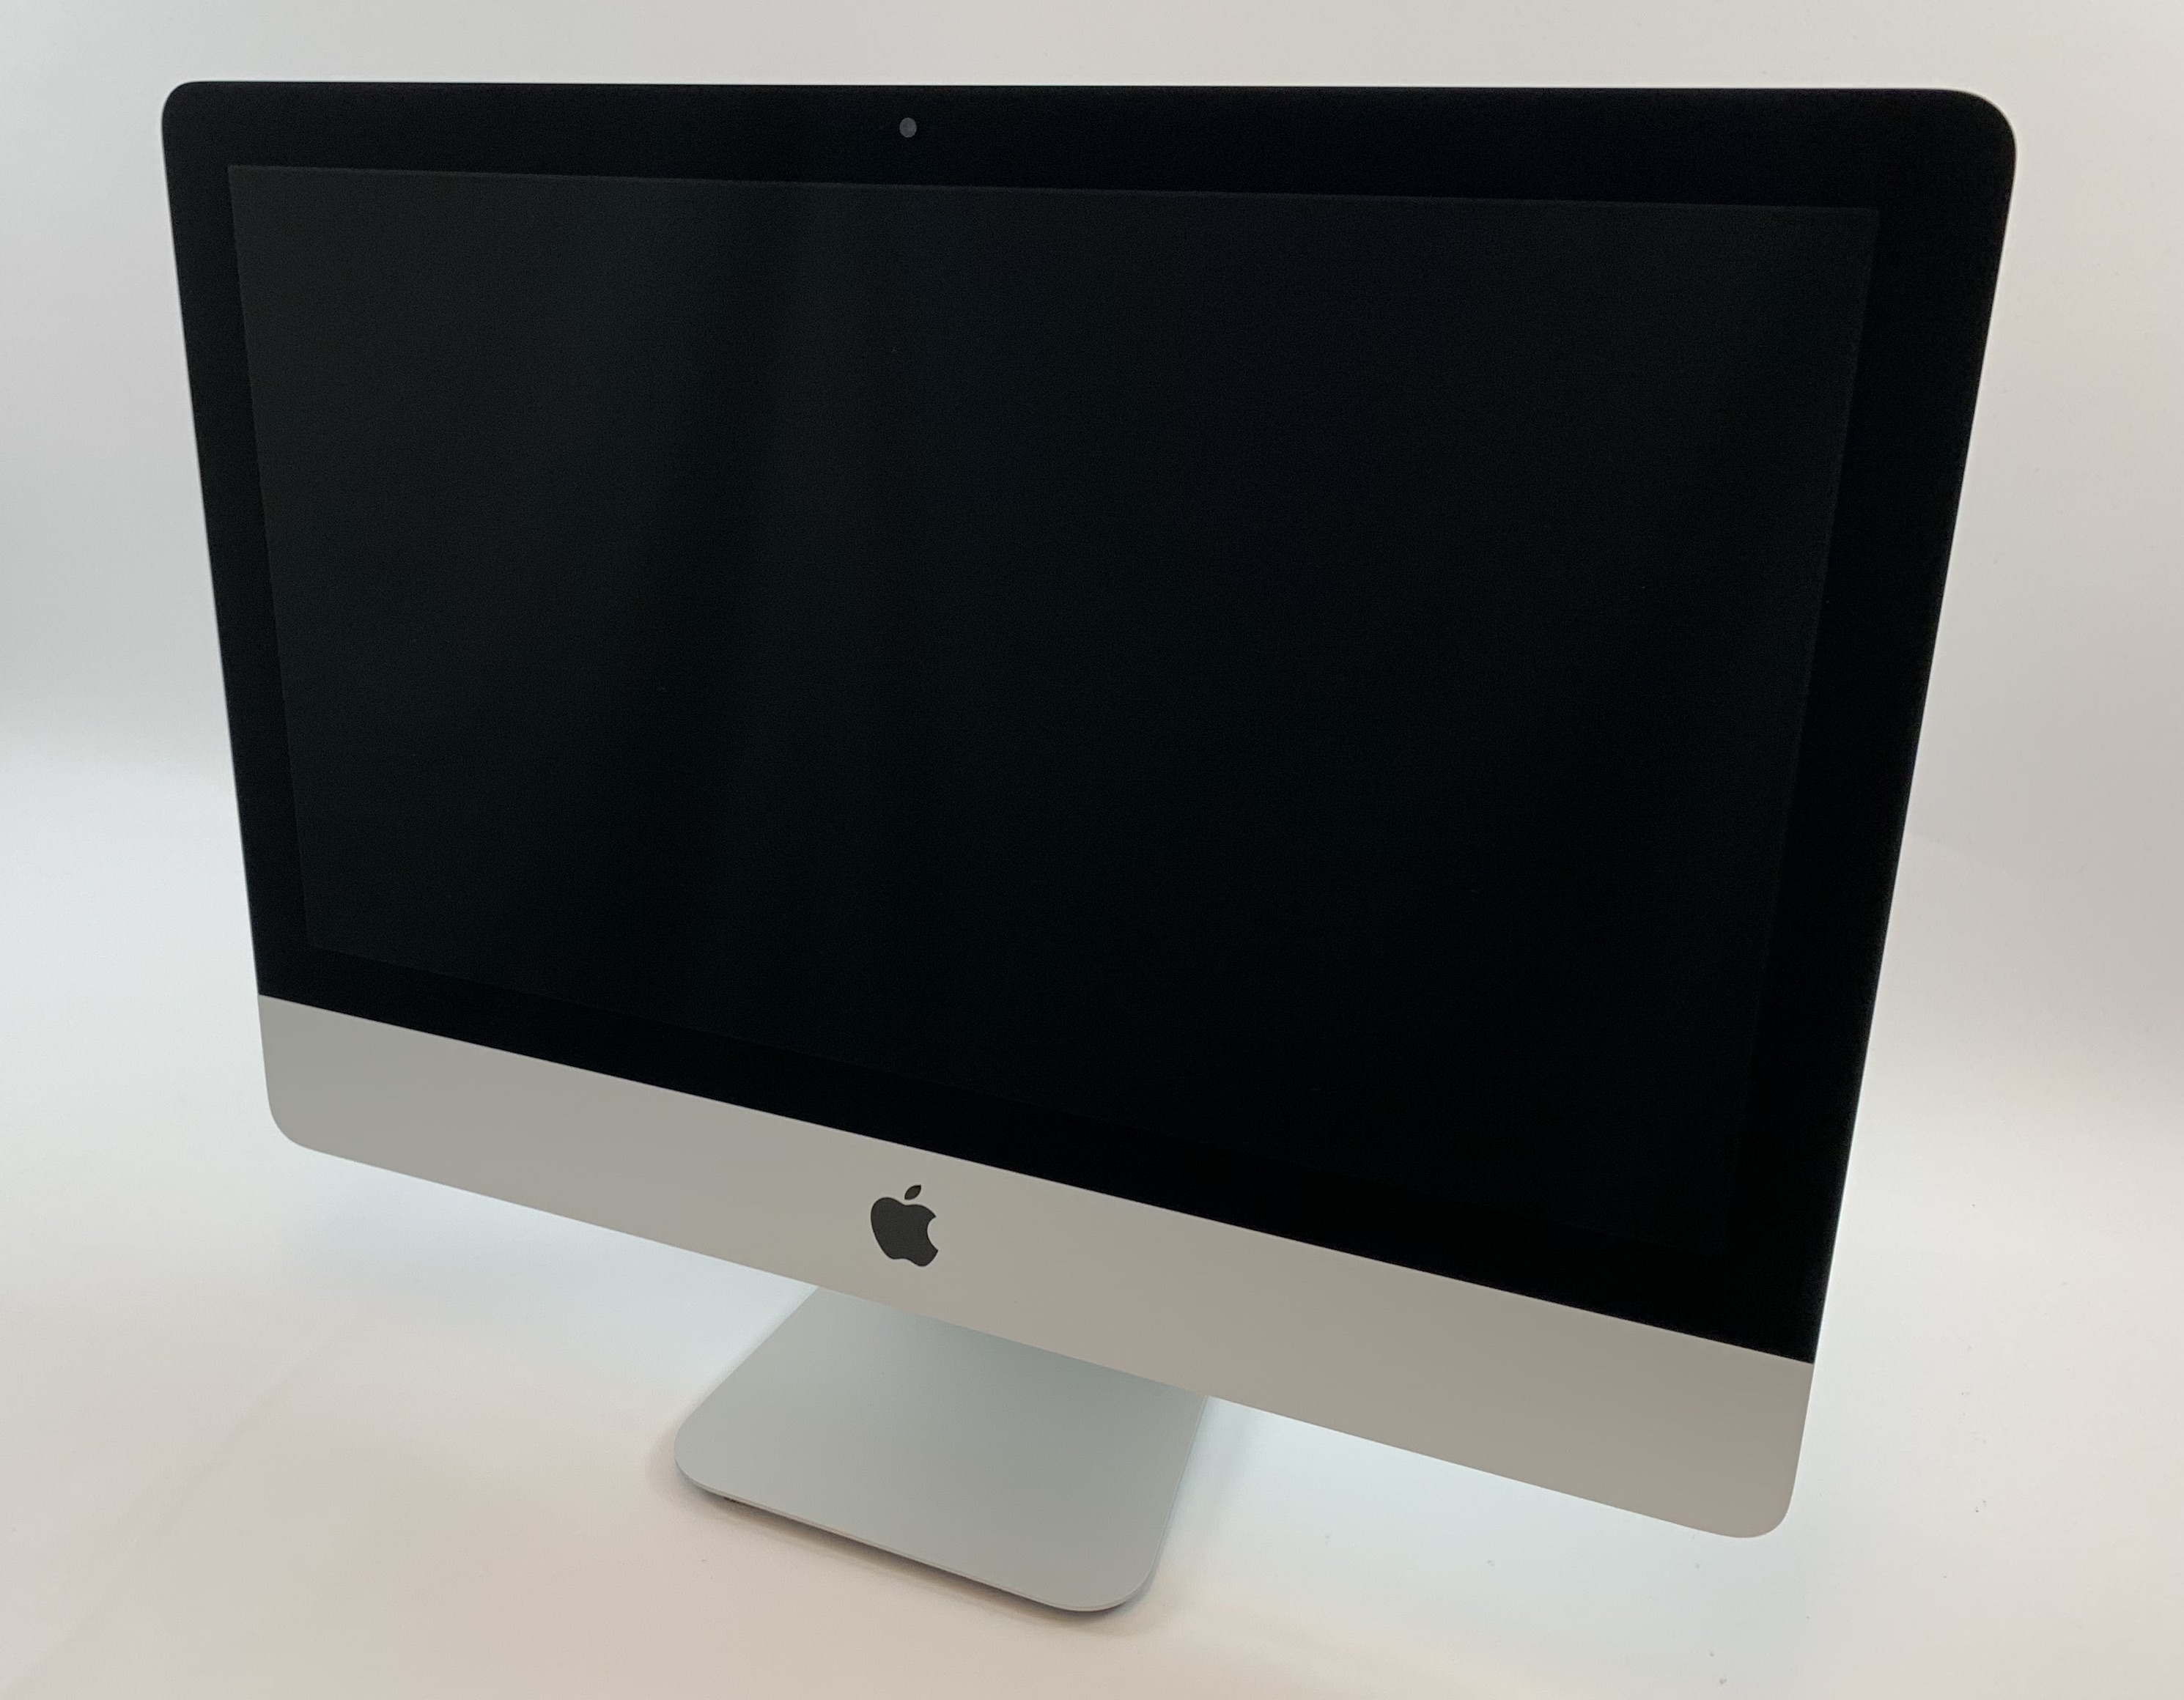 "iMac 21.5"" Retina 4K Mid 2017 (Intel Quad-Core i5 3.0 GHz 8 GB RAM 1 TB HDD), Intel Quad-Core i5 3.0 GHz, 8 GB RAM, 1 TB HDD, Bild 1"